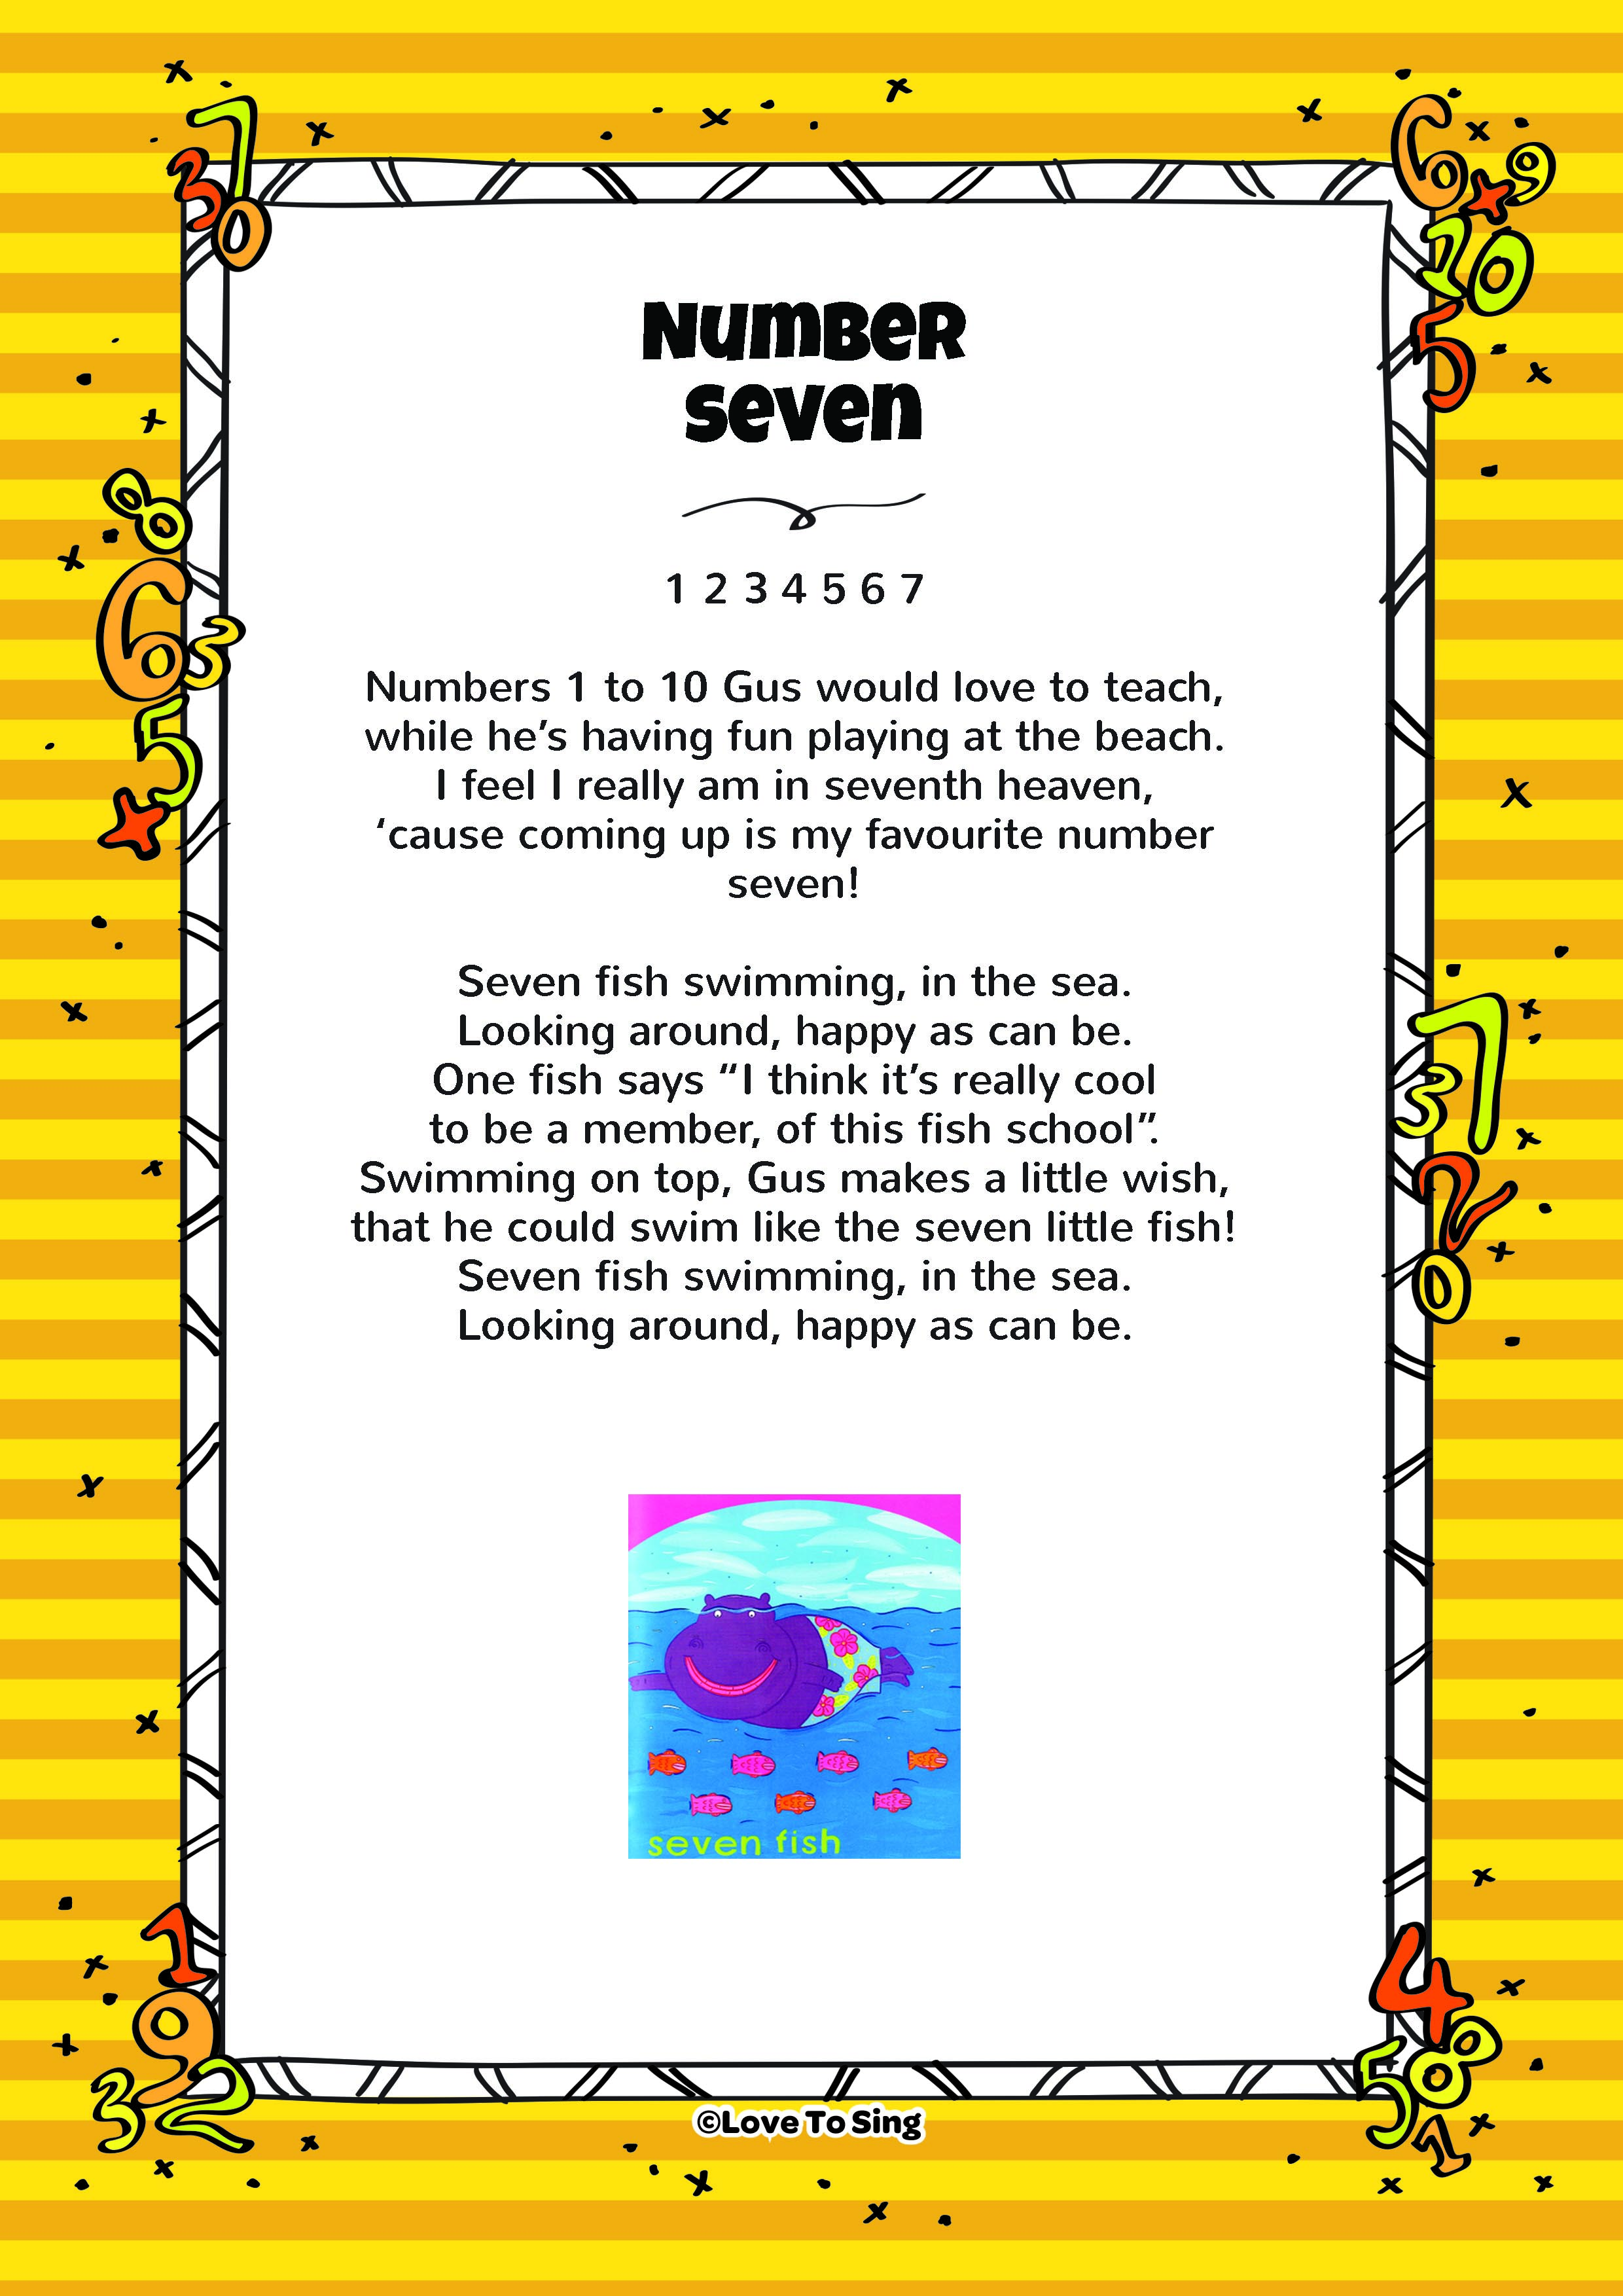 Seven Fish - Number 7 | Kids Video Song with FREE Lyrics ...